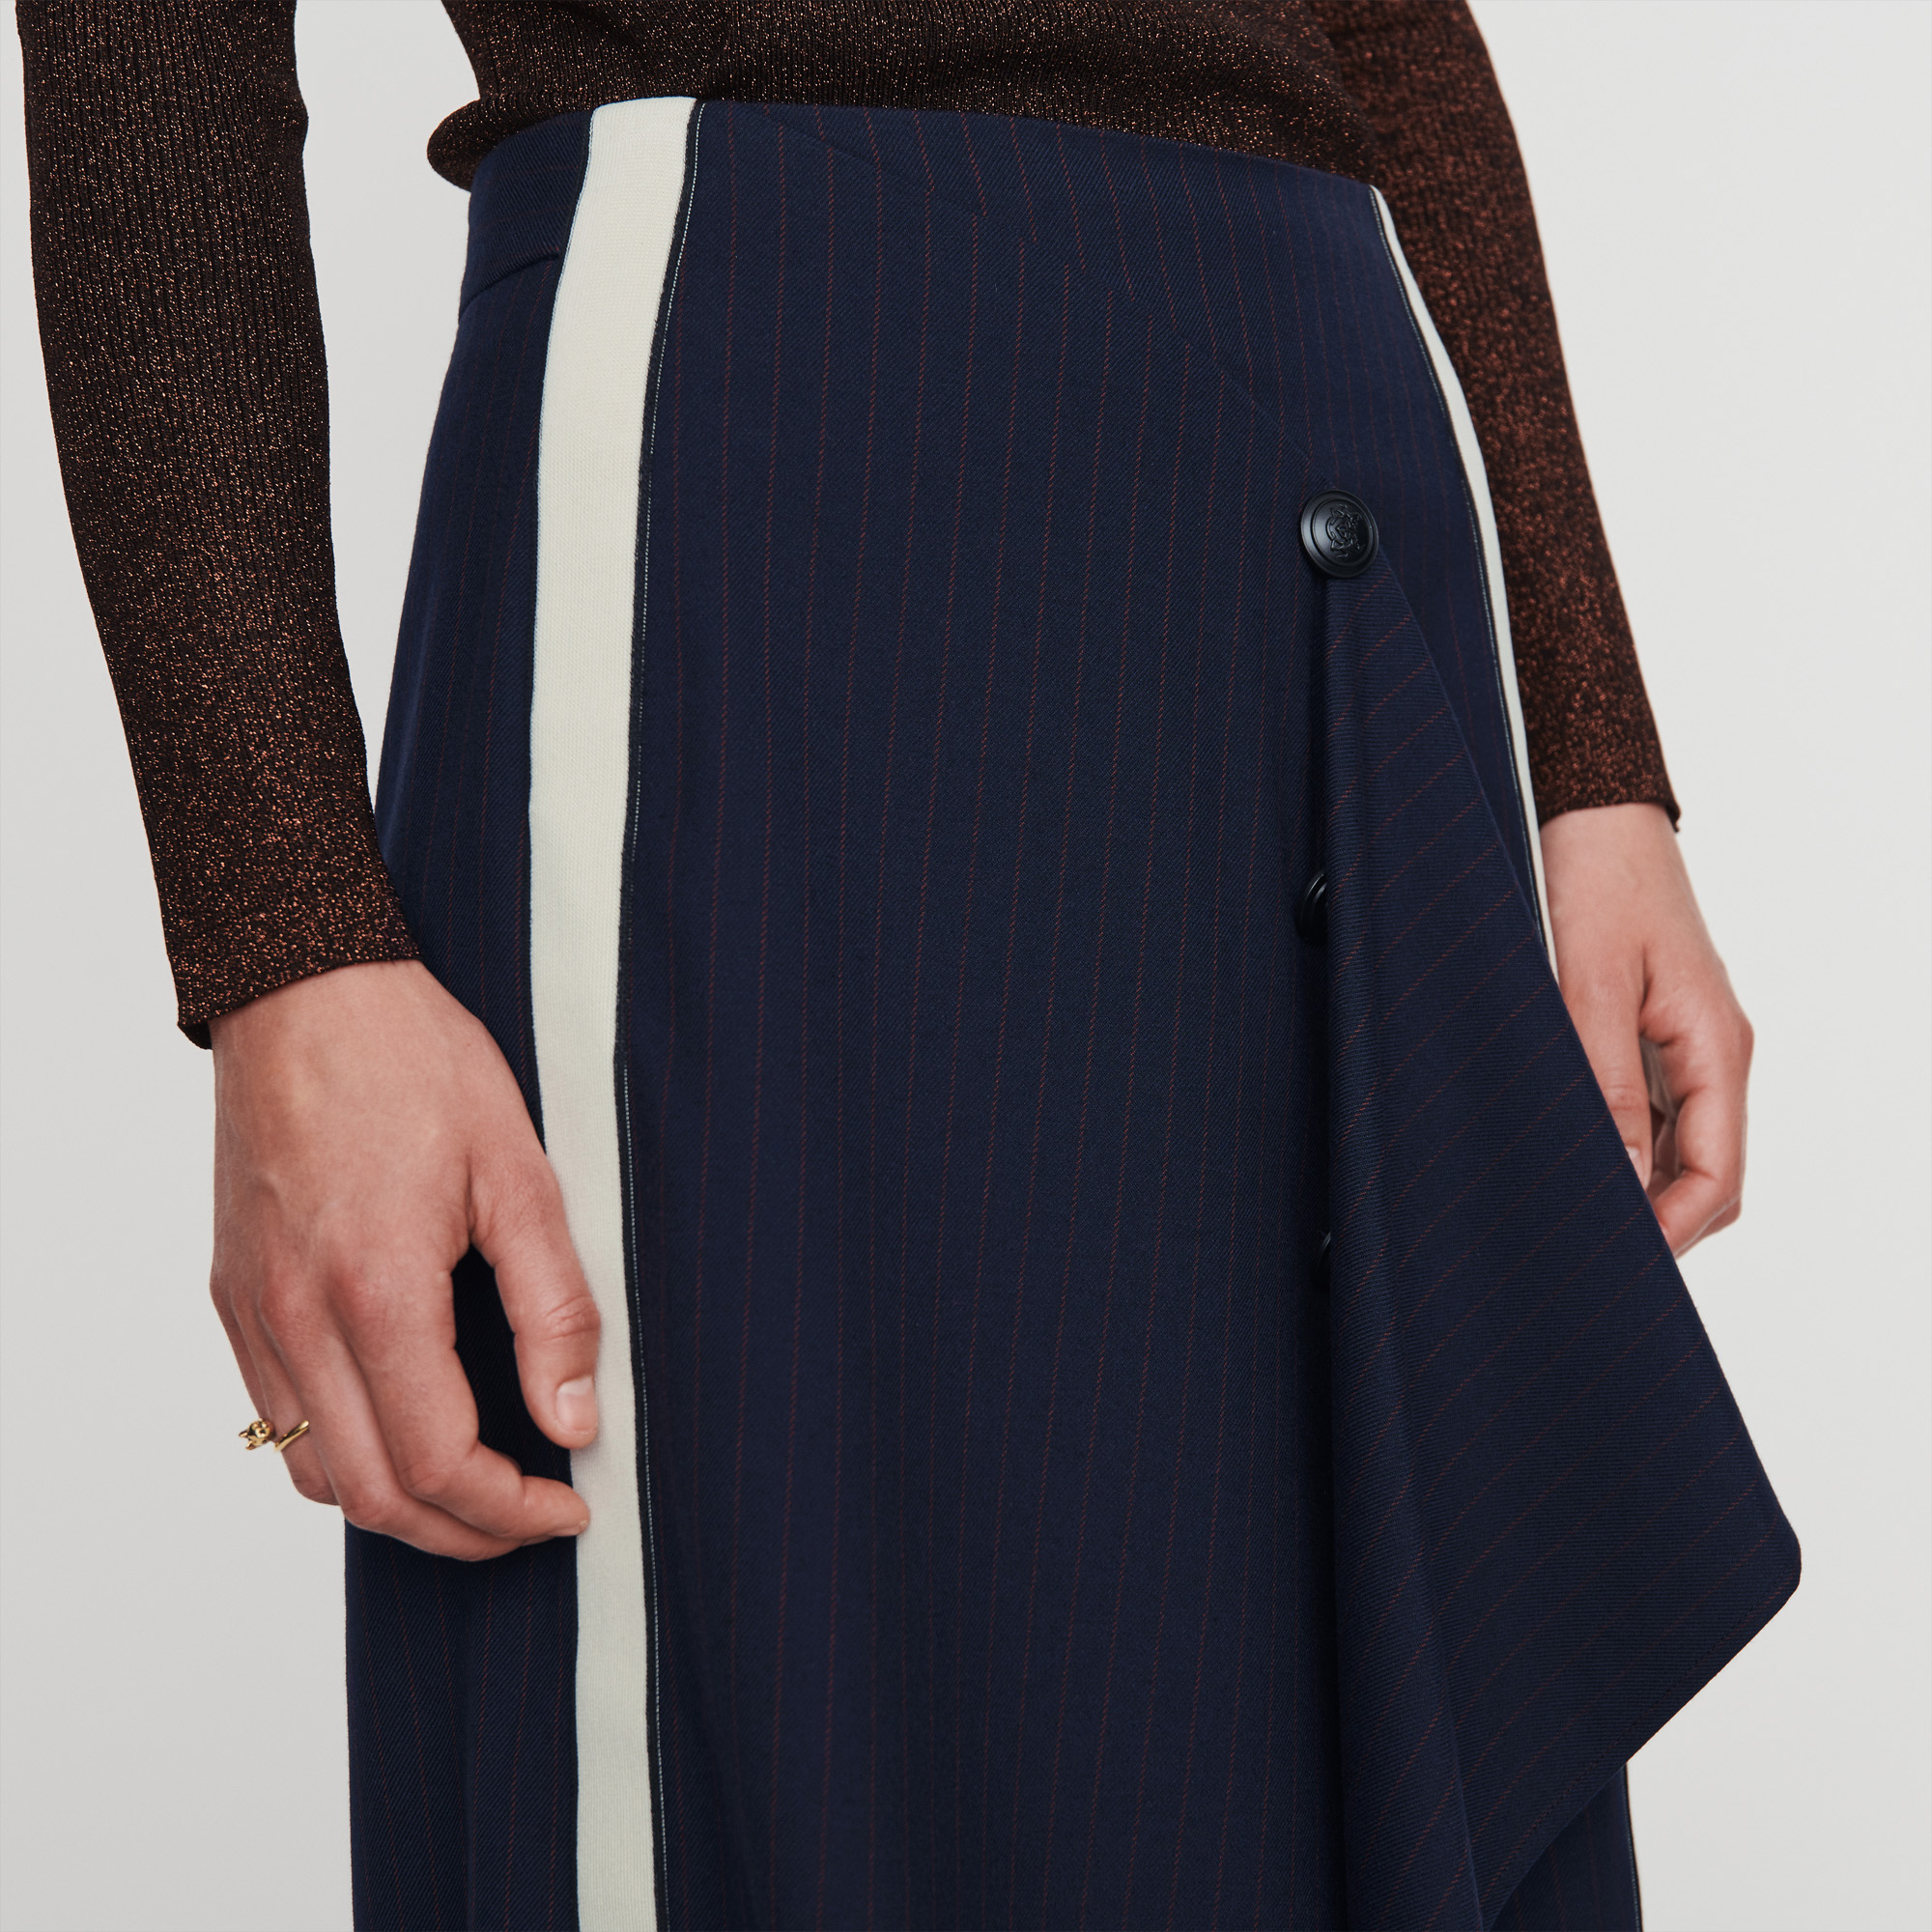 Skirt With Racing Stripes - Navy